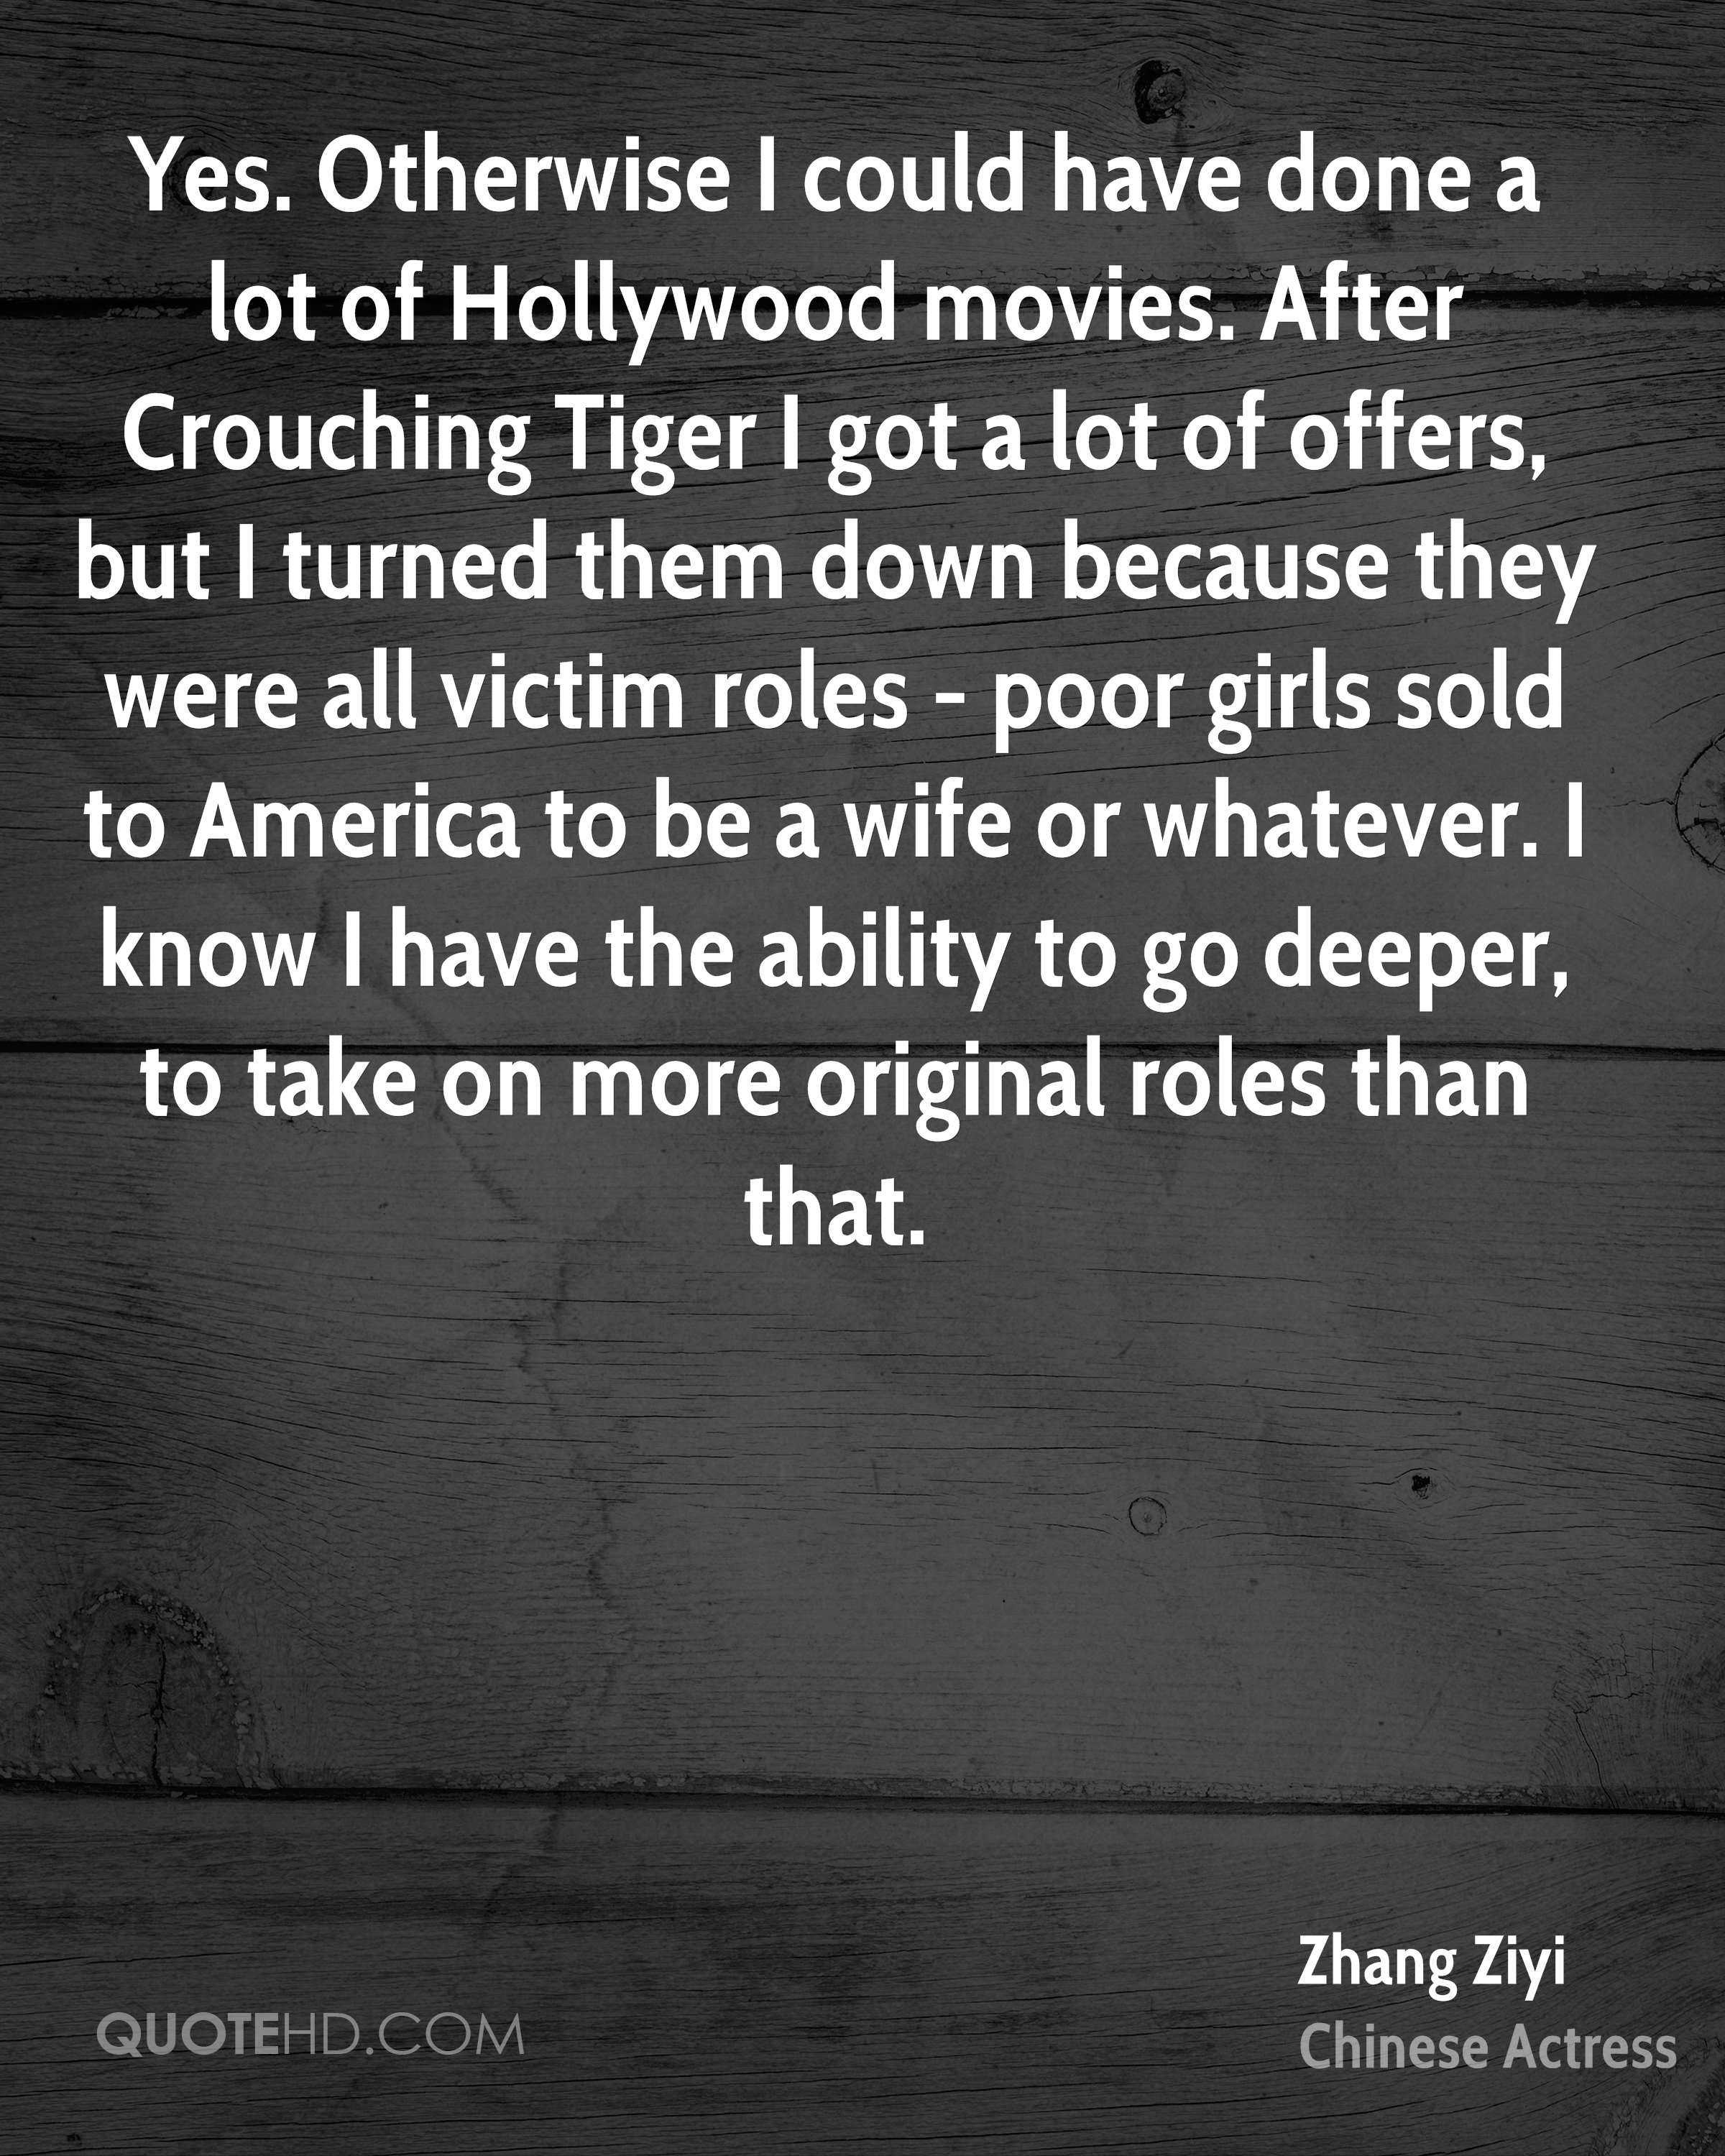 Yes. Otherwise I could have done a lot of Hollywood movies. After Crouching Tiger I got a lot of offers, but I turned them down because they were all victim roles - poor girls sold to America to be a wife or whatever. I know I have the ability to go deeper, to take on more original roles than that.